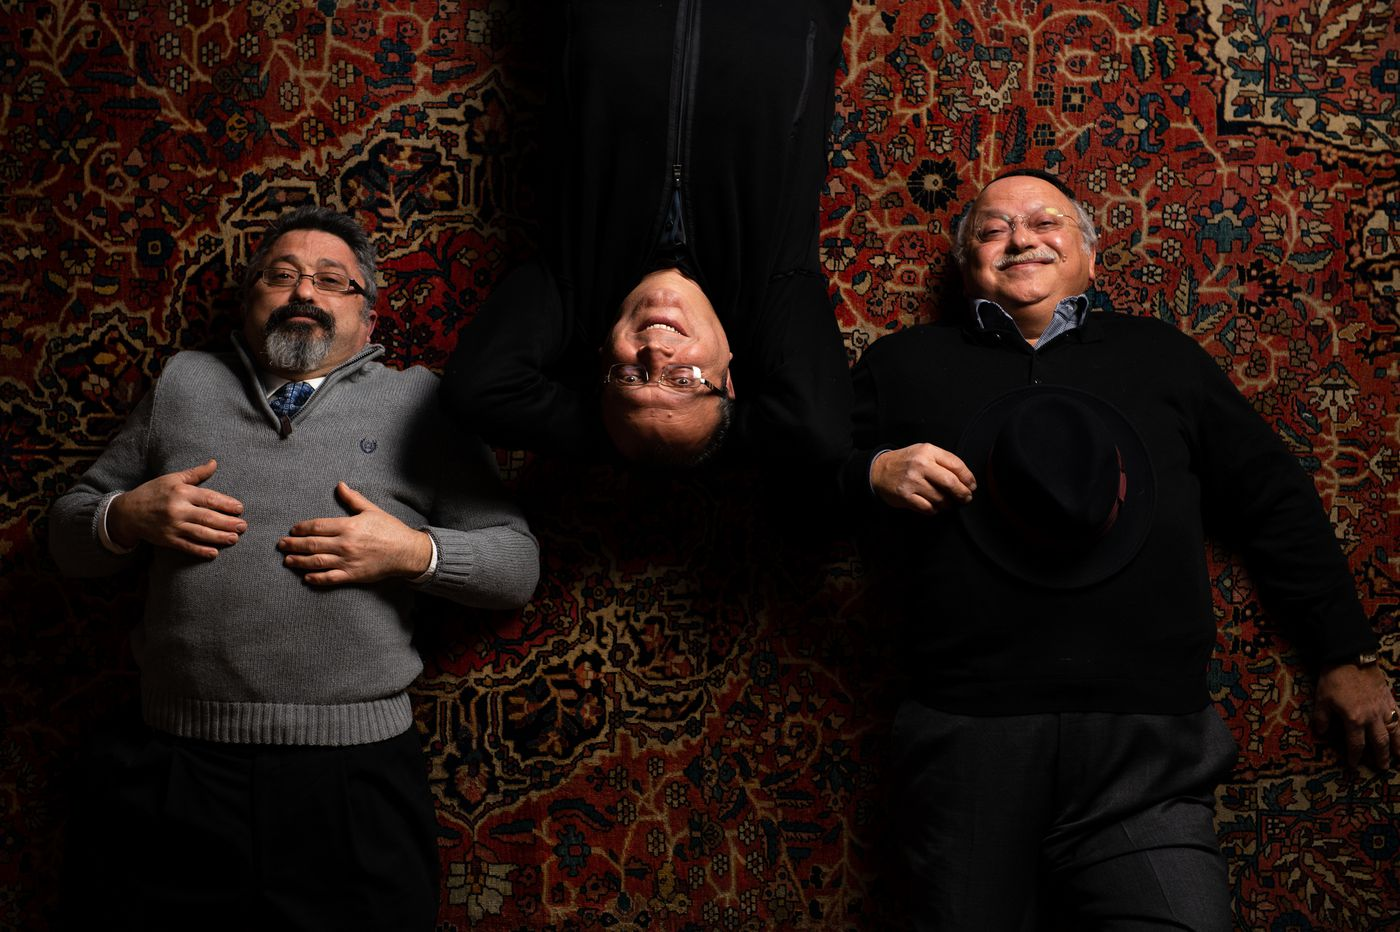 'Fast fashion,' millennials, and robotic tufting doom Persian rug merchants. On the Main Line, the Tehrani brothers hang on.